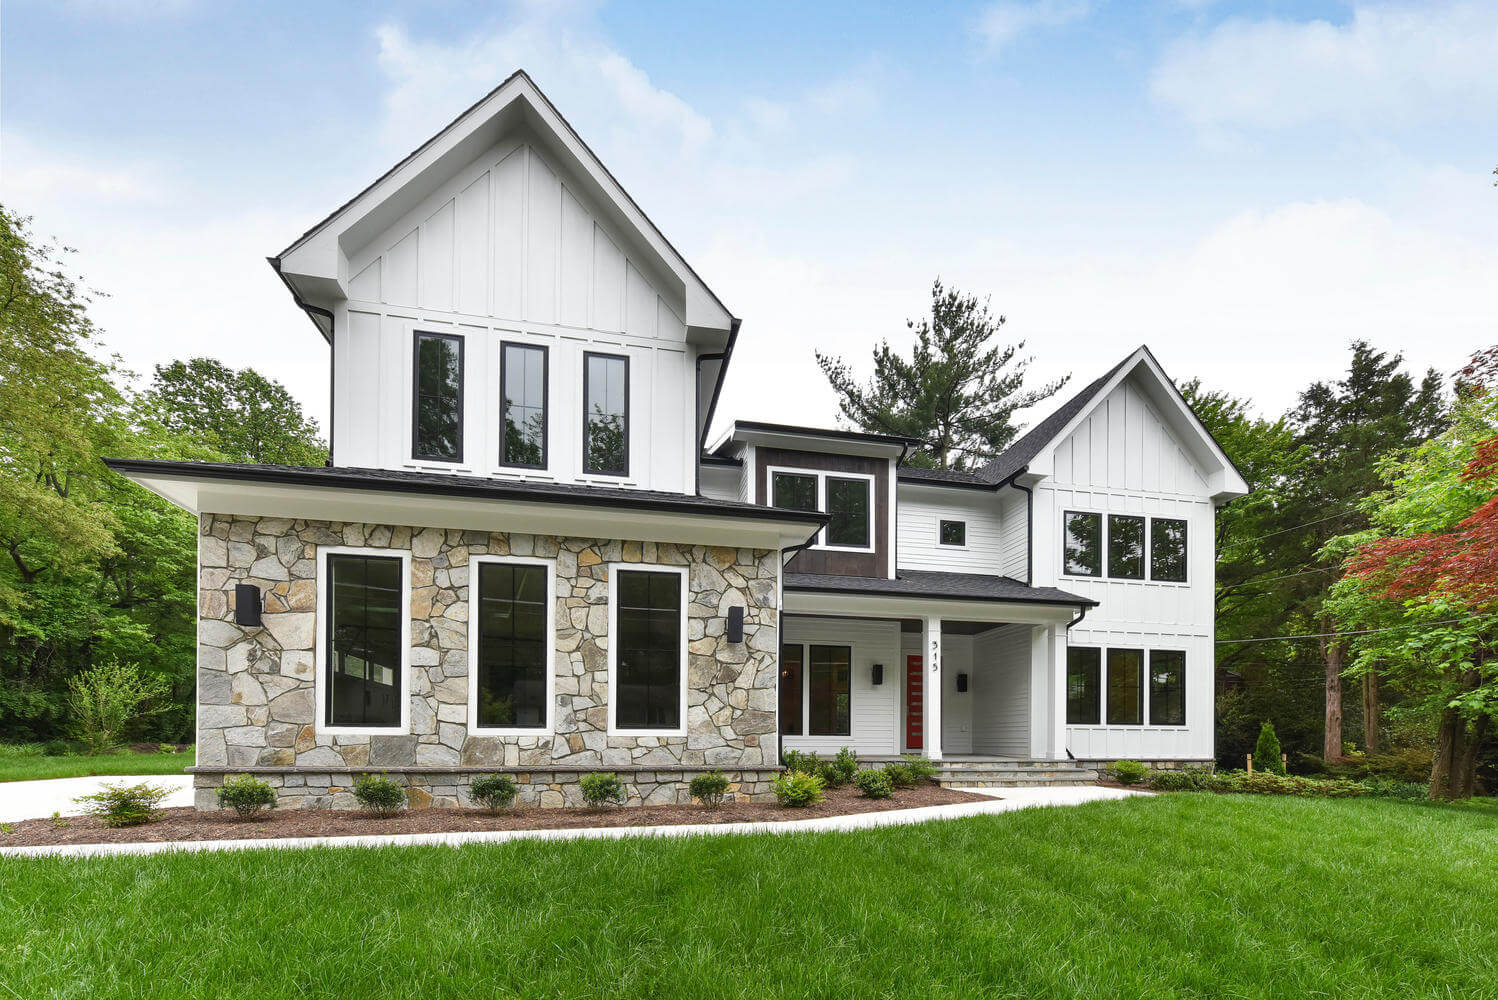 4 Bed, 3 Bath Modern Farmhouse in Northern Virginia